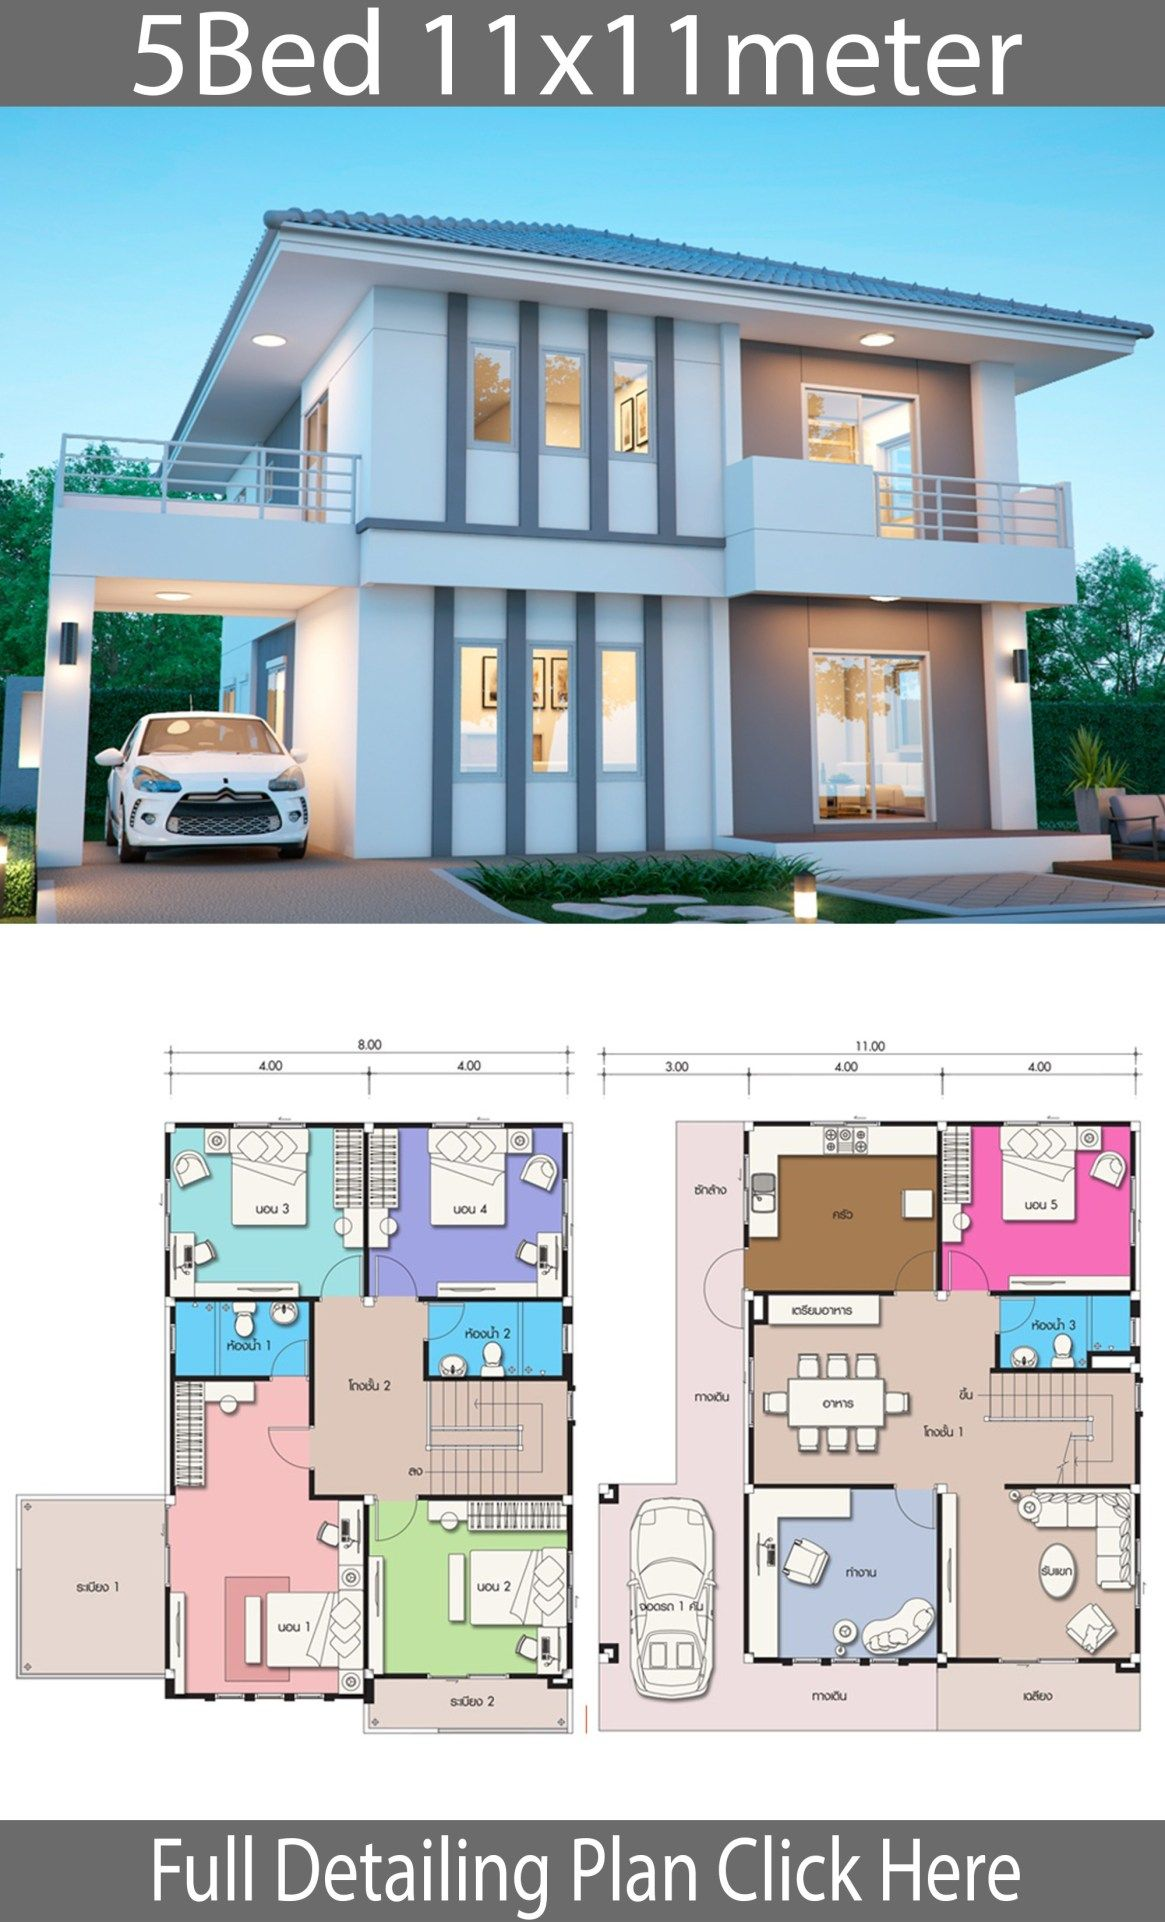 House Design Plan 11x11m With 5 Bedrooms Home Design With Plansearch Sims House Plans Small Modern House Plans House Construction Plan